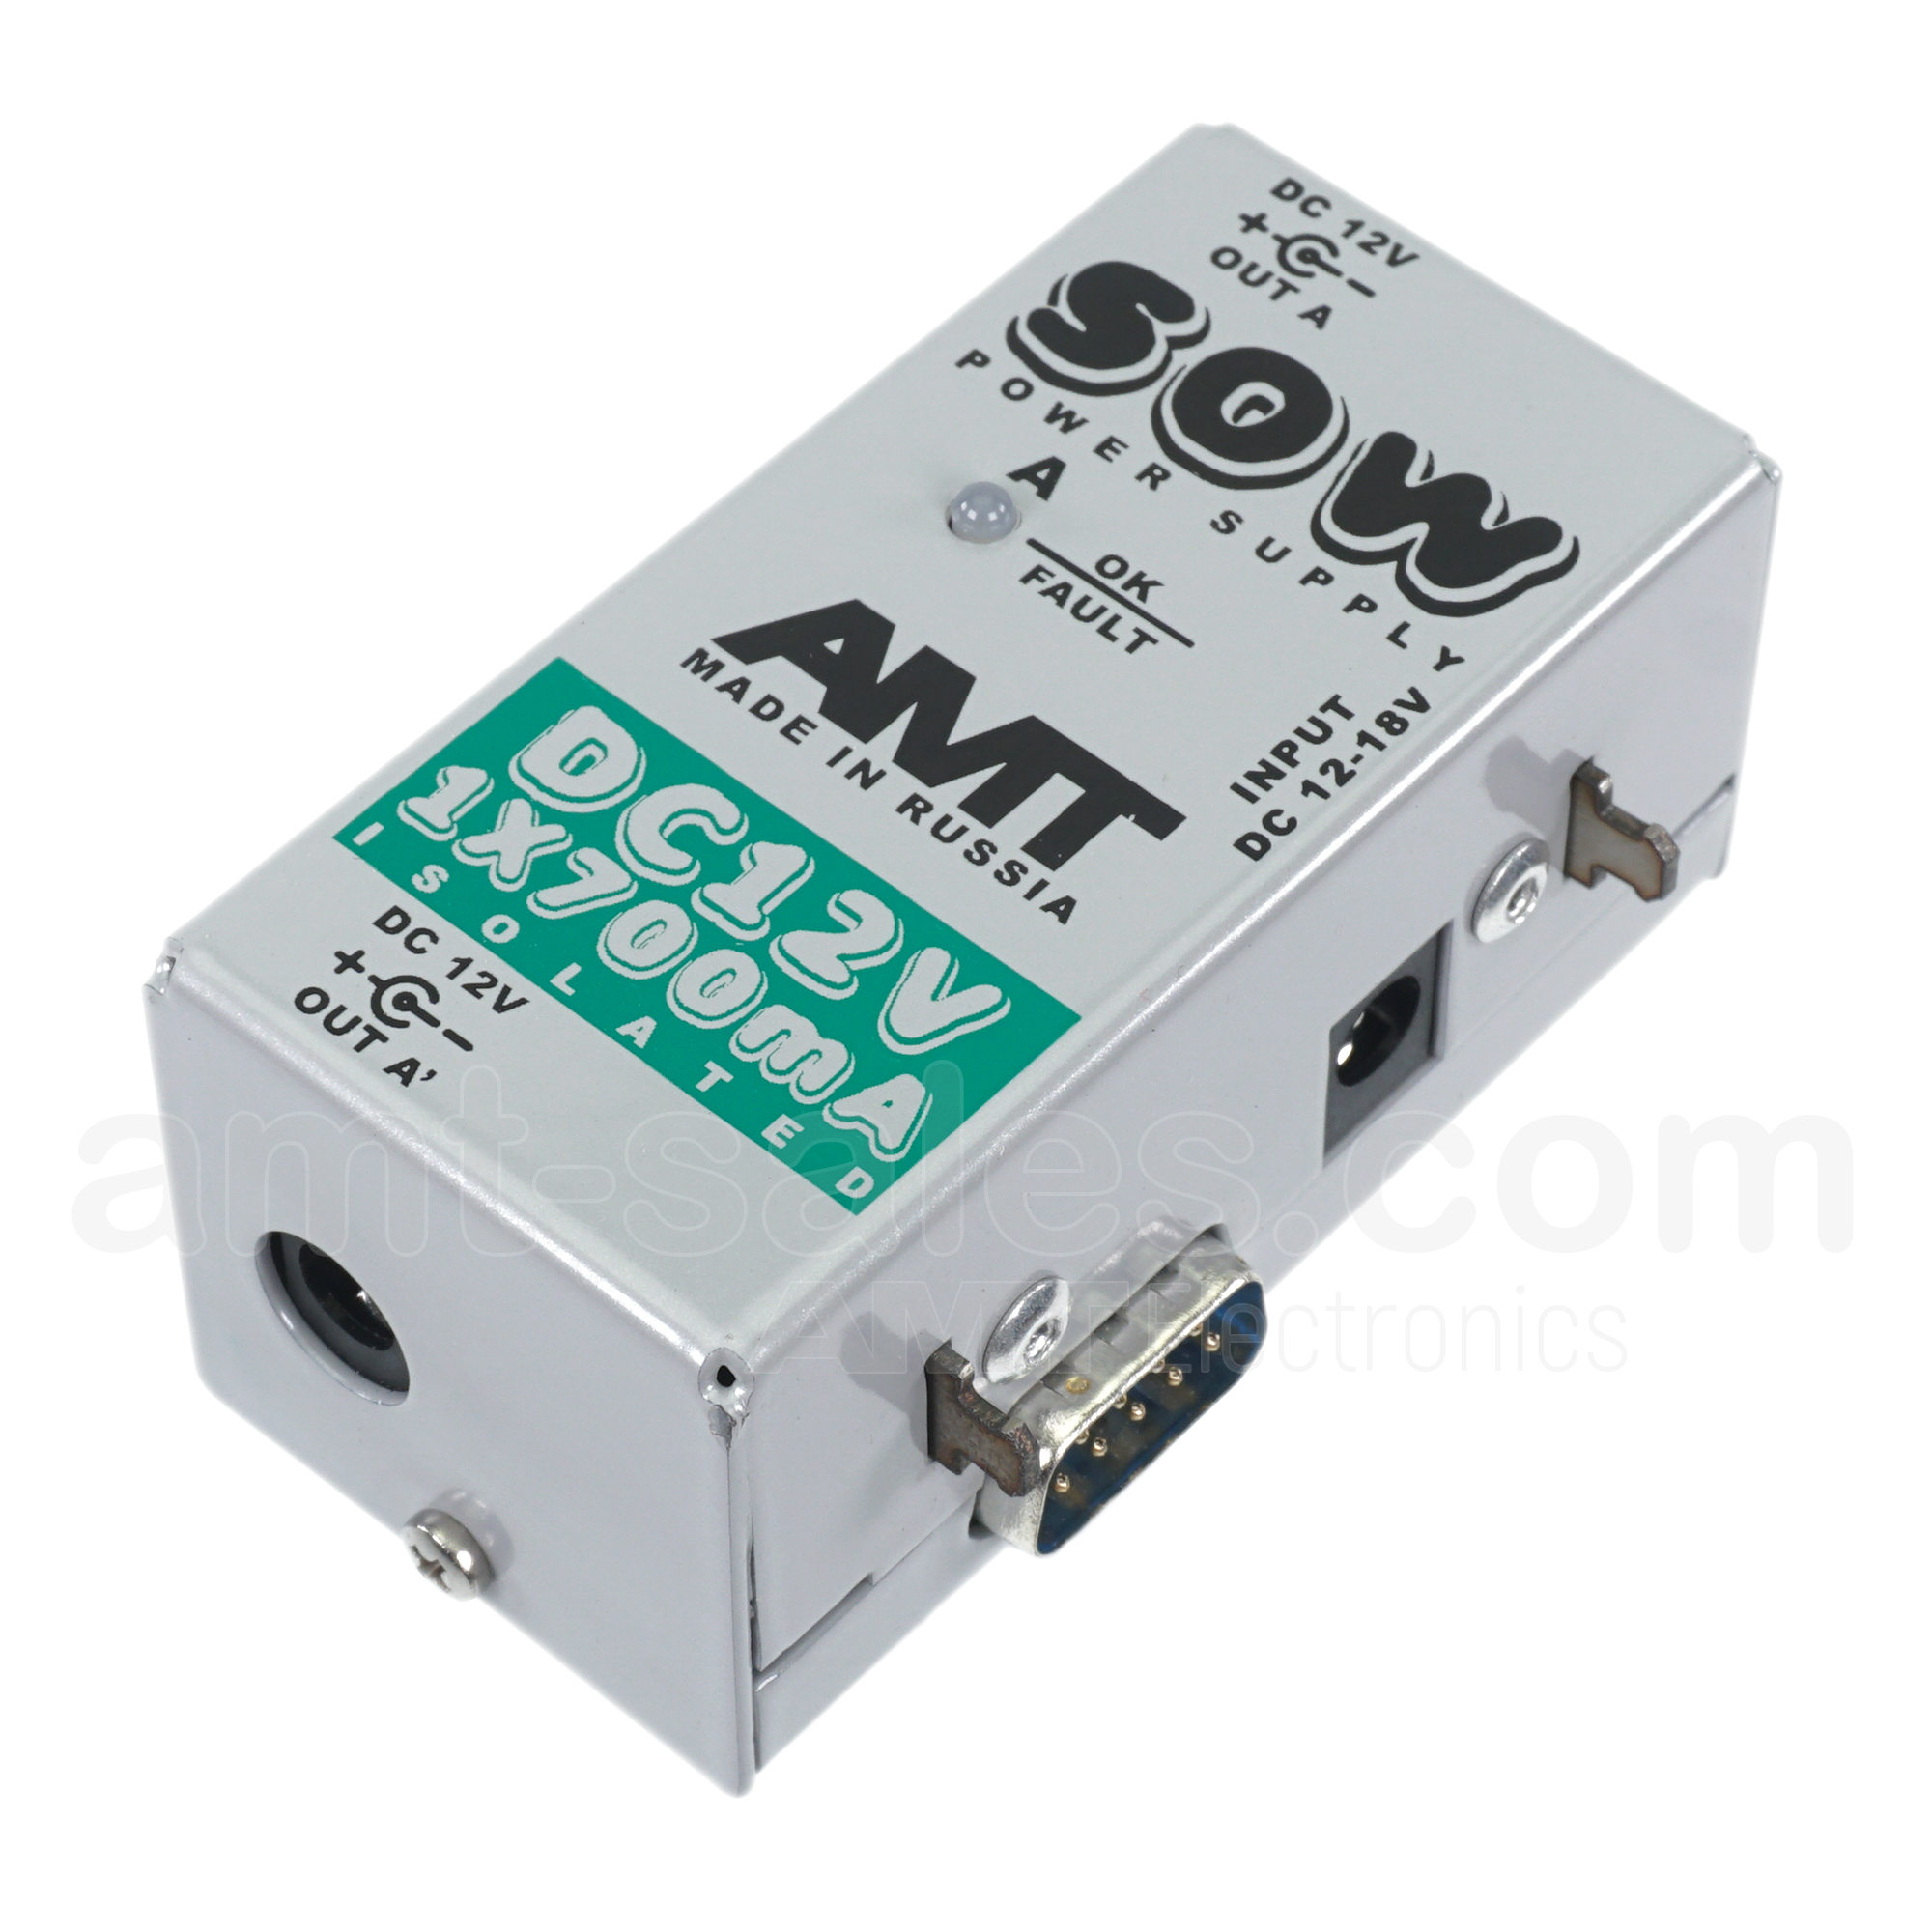 AMT SOW PS DC-12V 1x700mA - power supply module